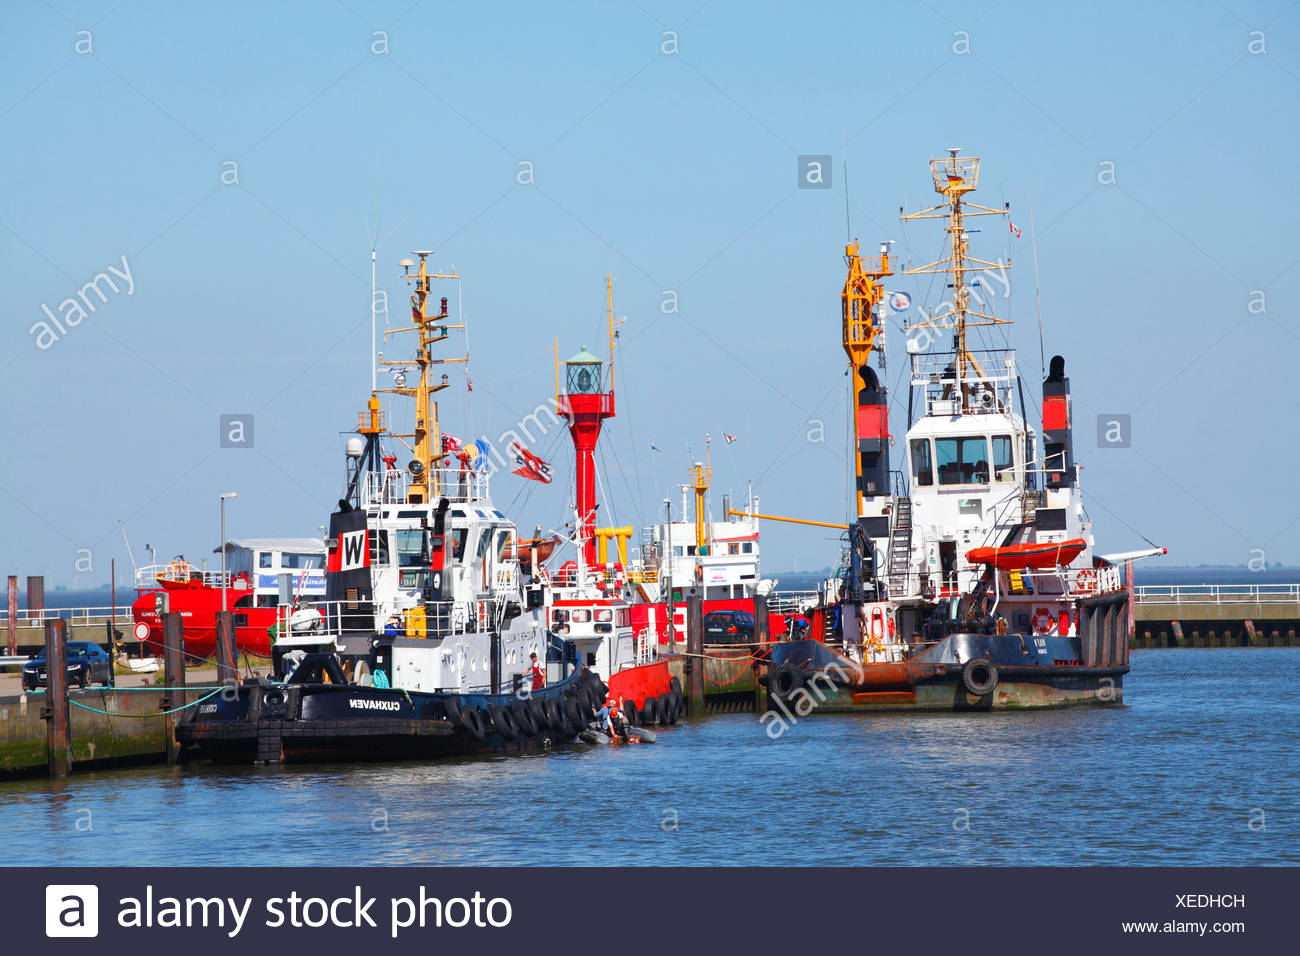 Preharbour with ocean-going tugs, Cuxhaven, Lower Saxony, Germany, Europe - Stock Image